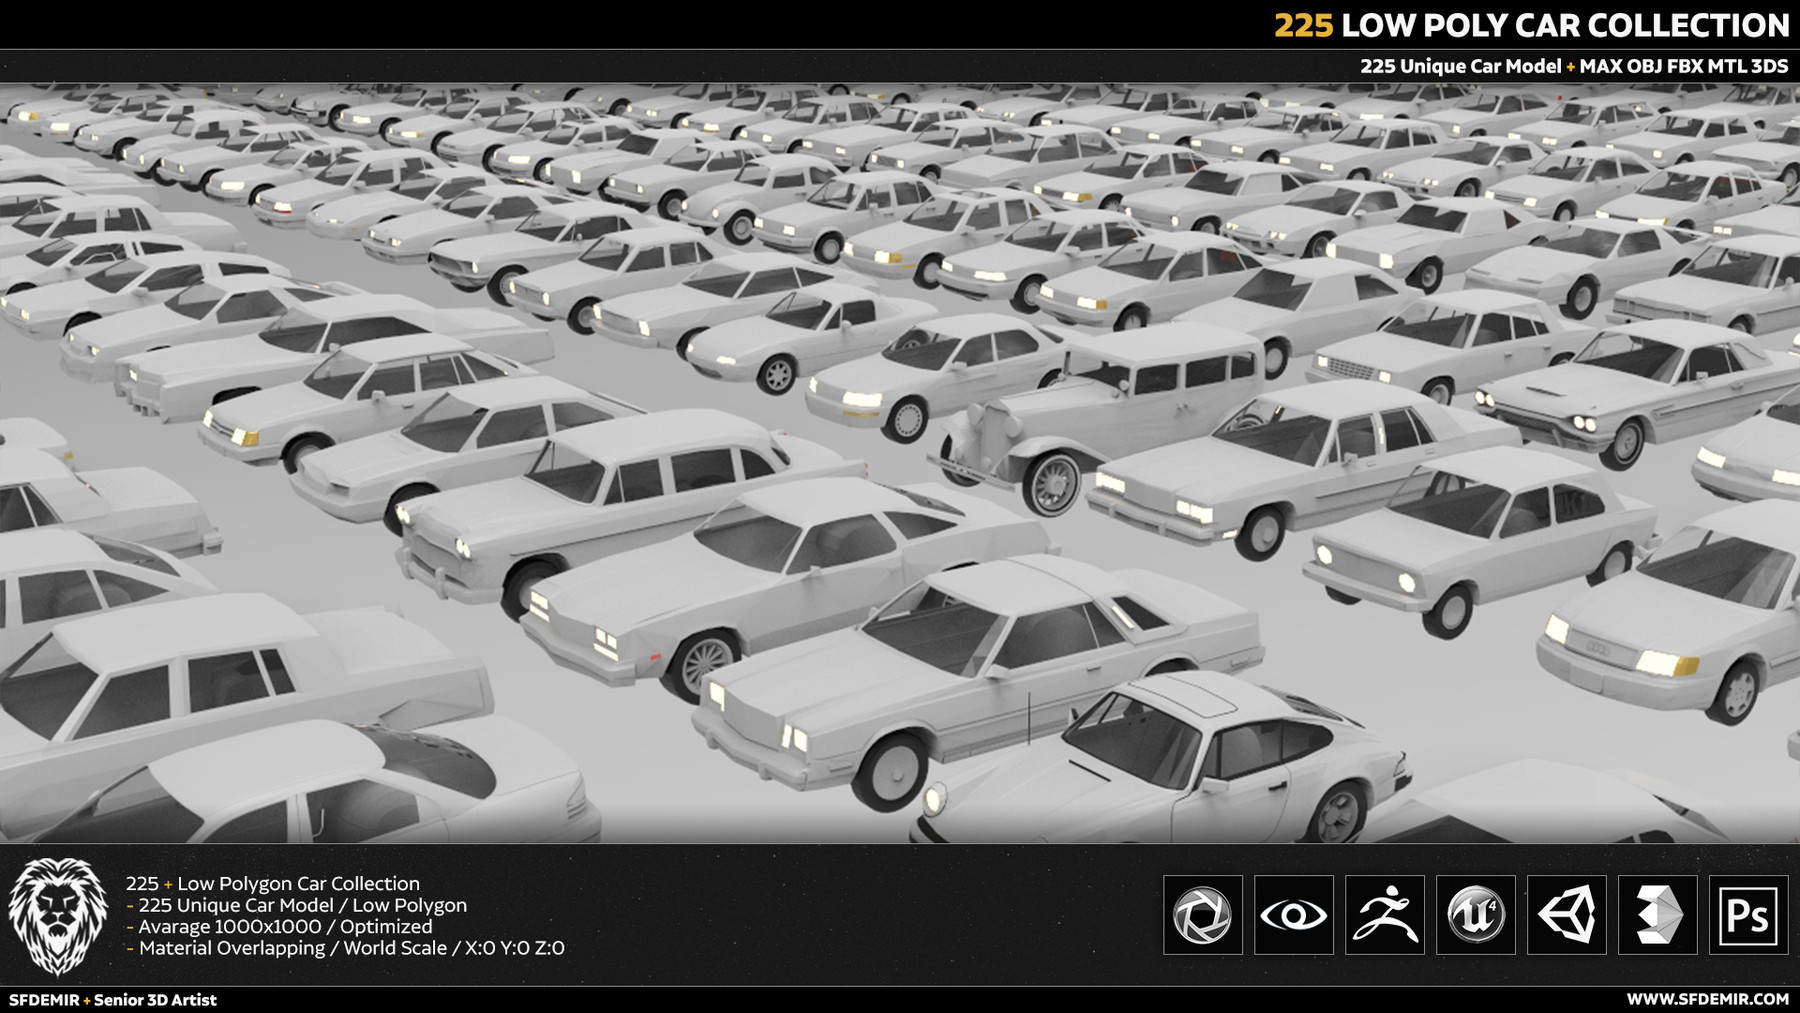 SFDEMIR - 225 Low Poly Car Collection